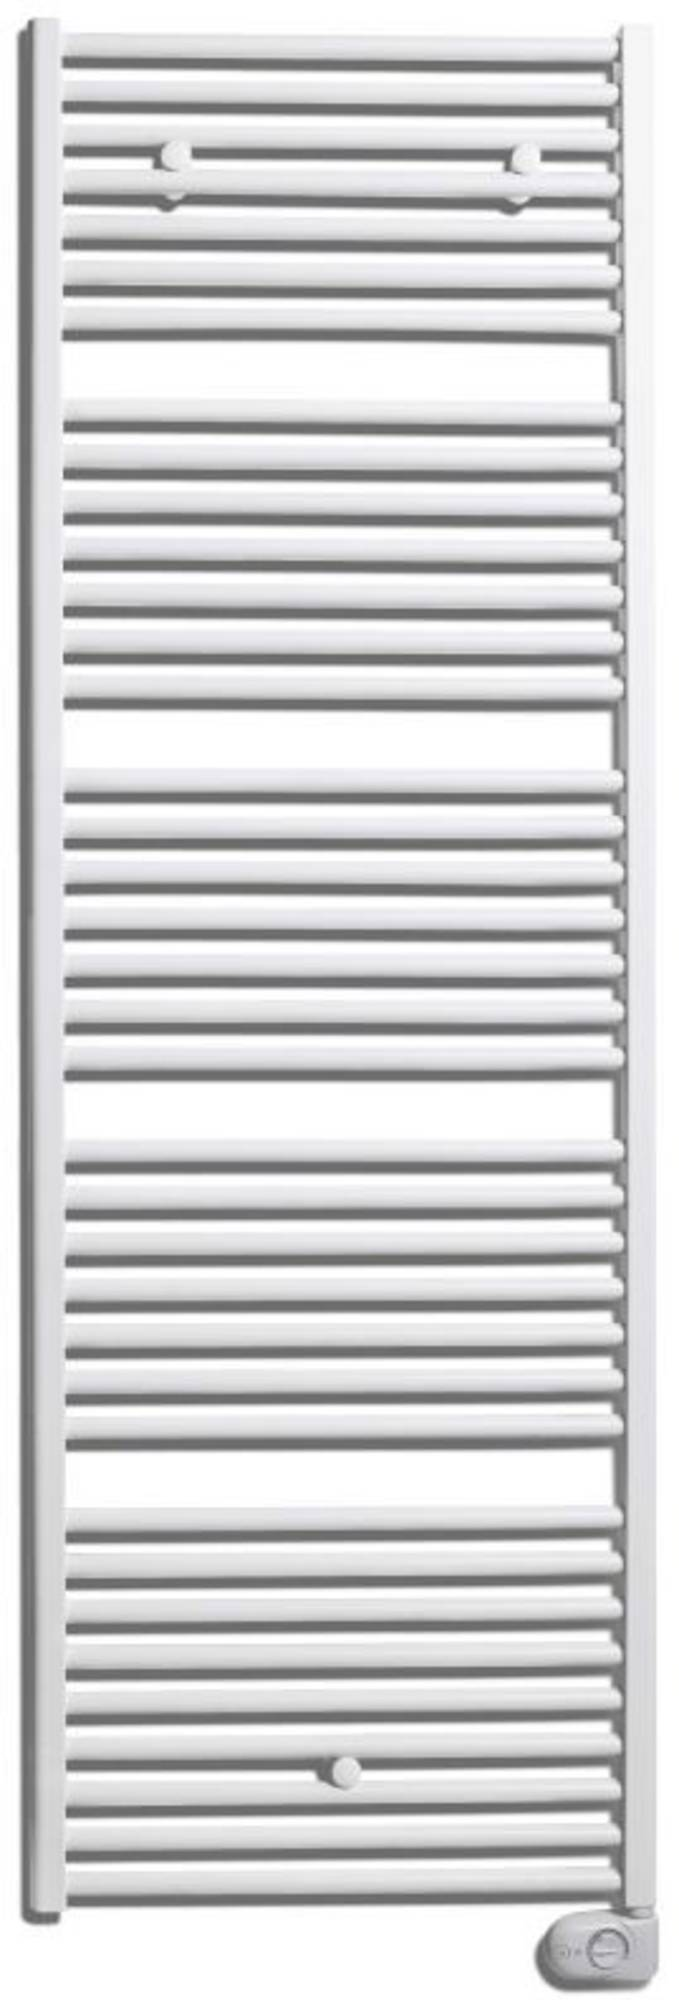 Elektrische Radiator Vasco Bathline BB-EL 500x1274mm 750Watt Wit